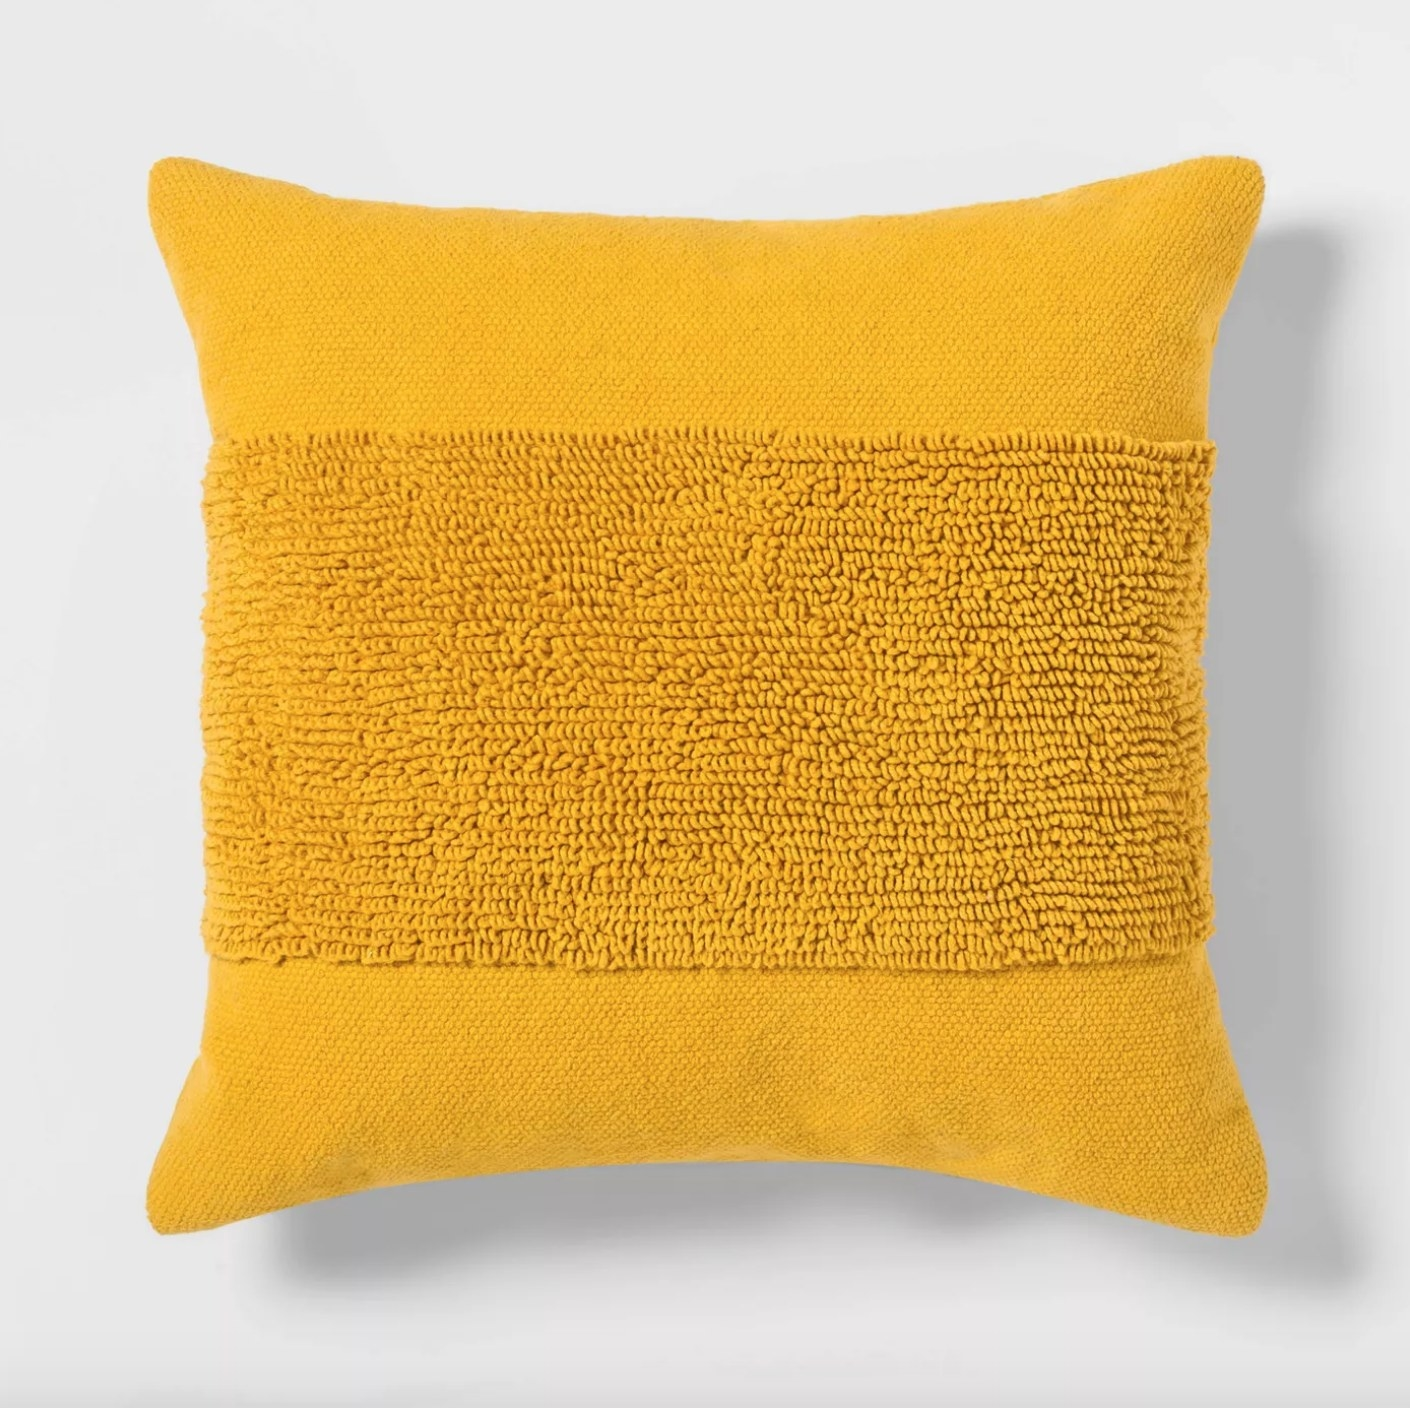 The tufted square throw pillow in yellow